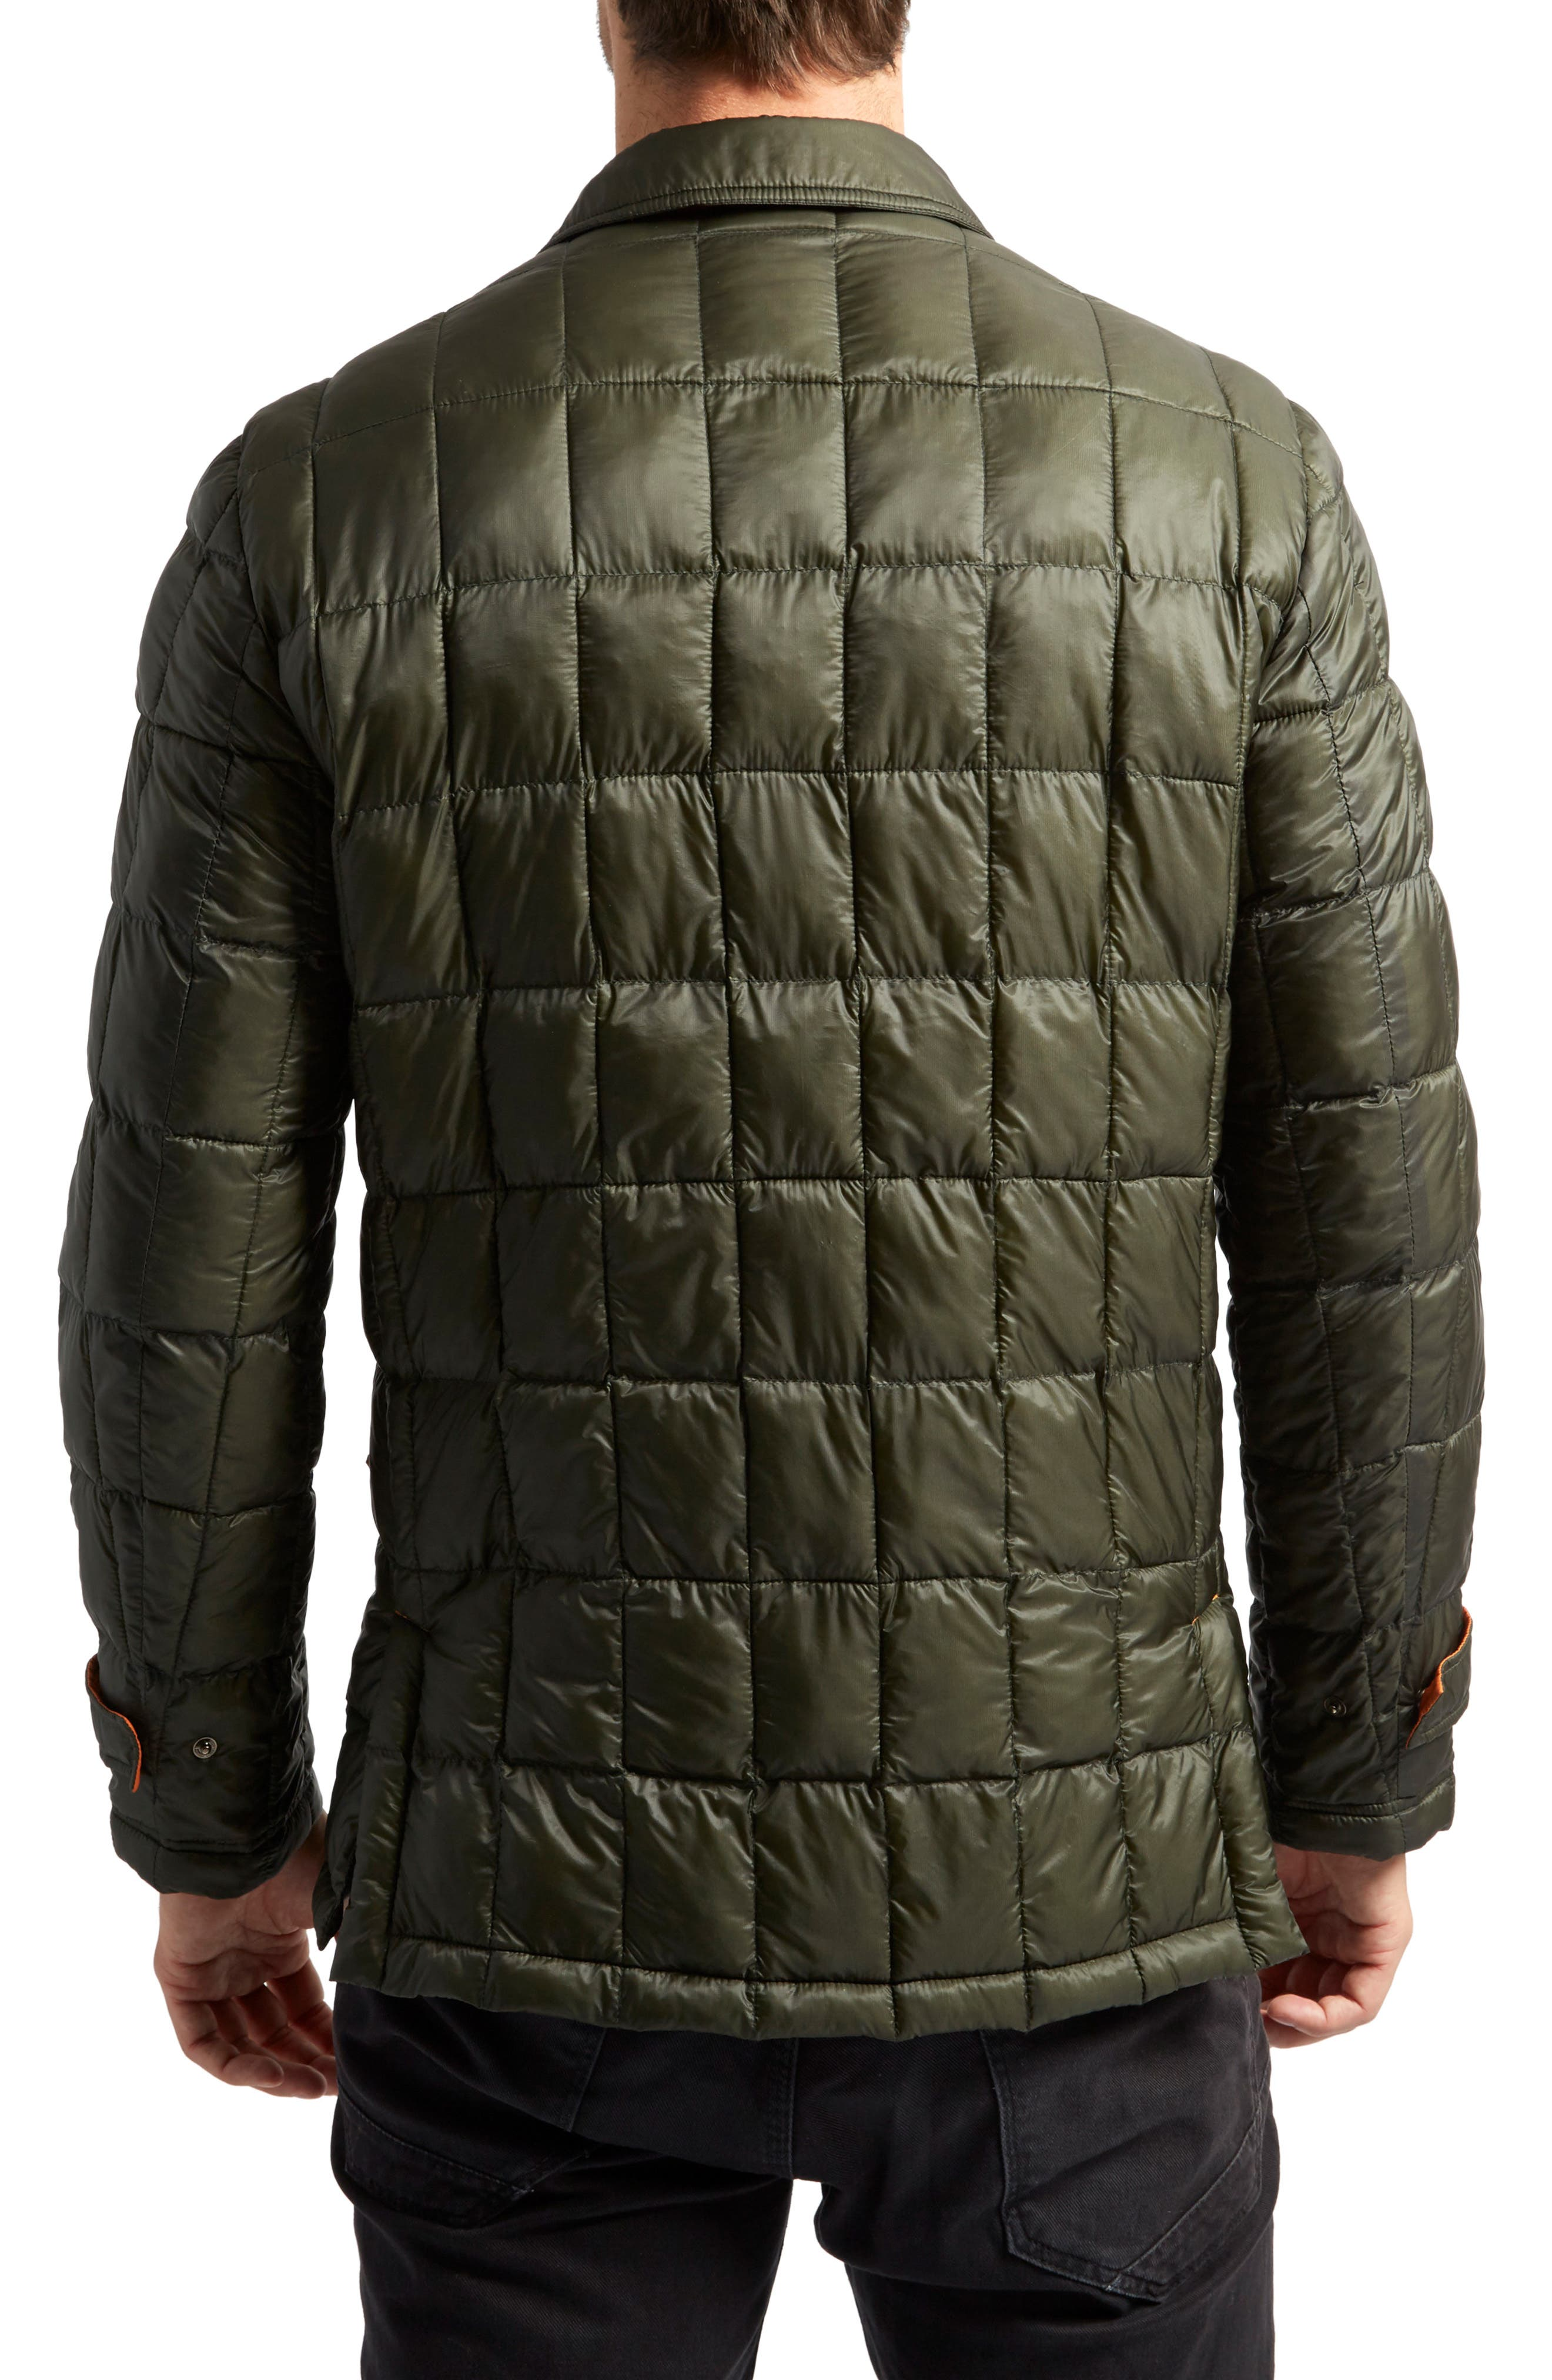 Butler Heat System Quilted Walking Jacket,                             Alternate thumbnail 2, color,                             340